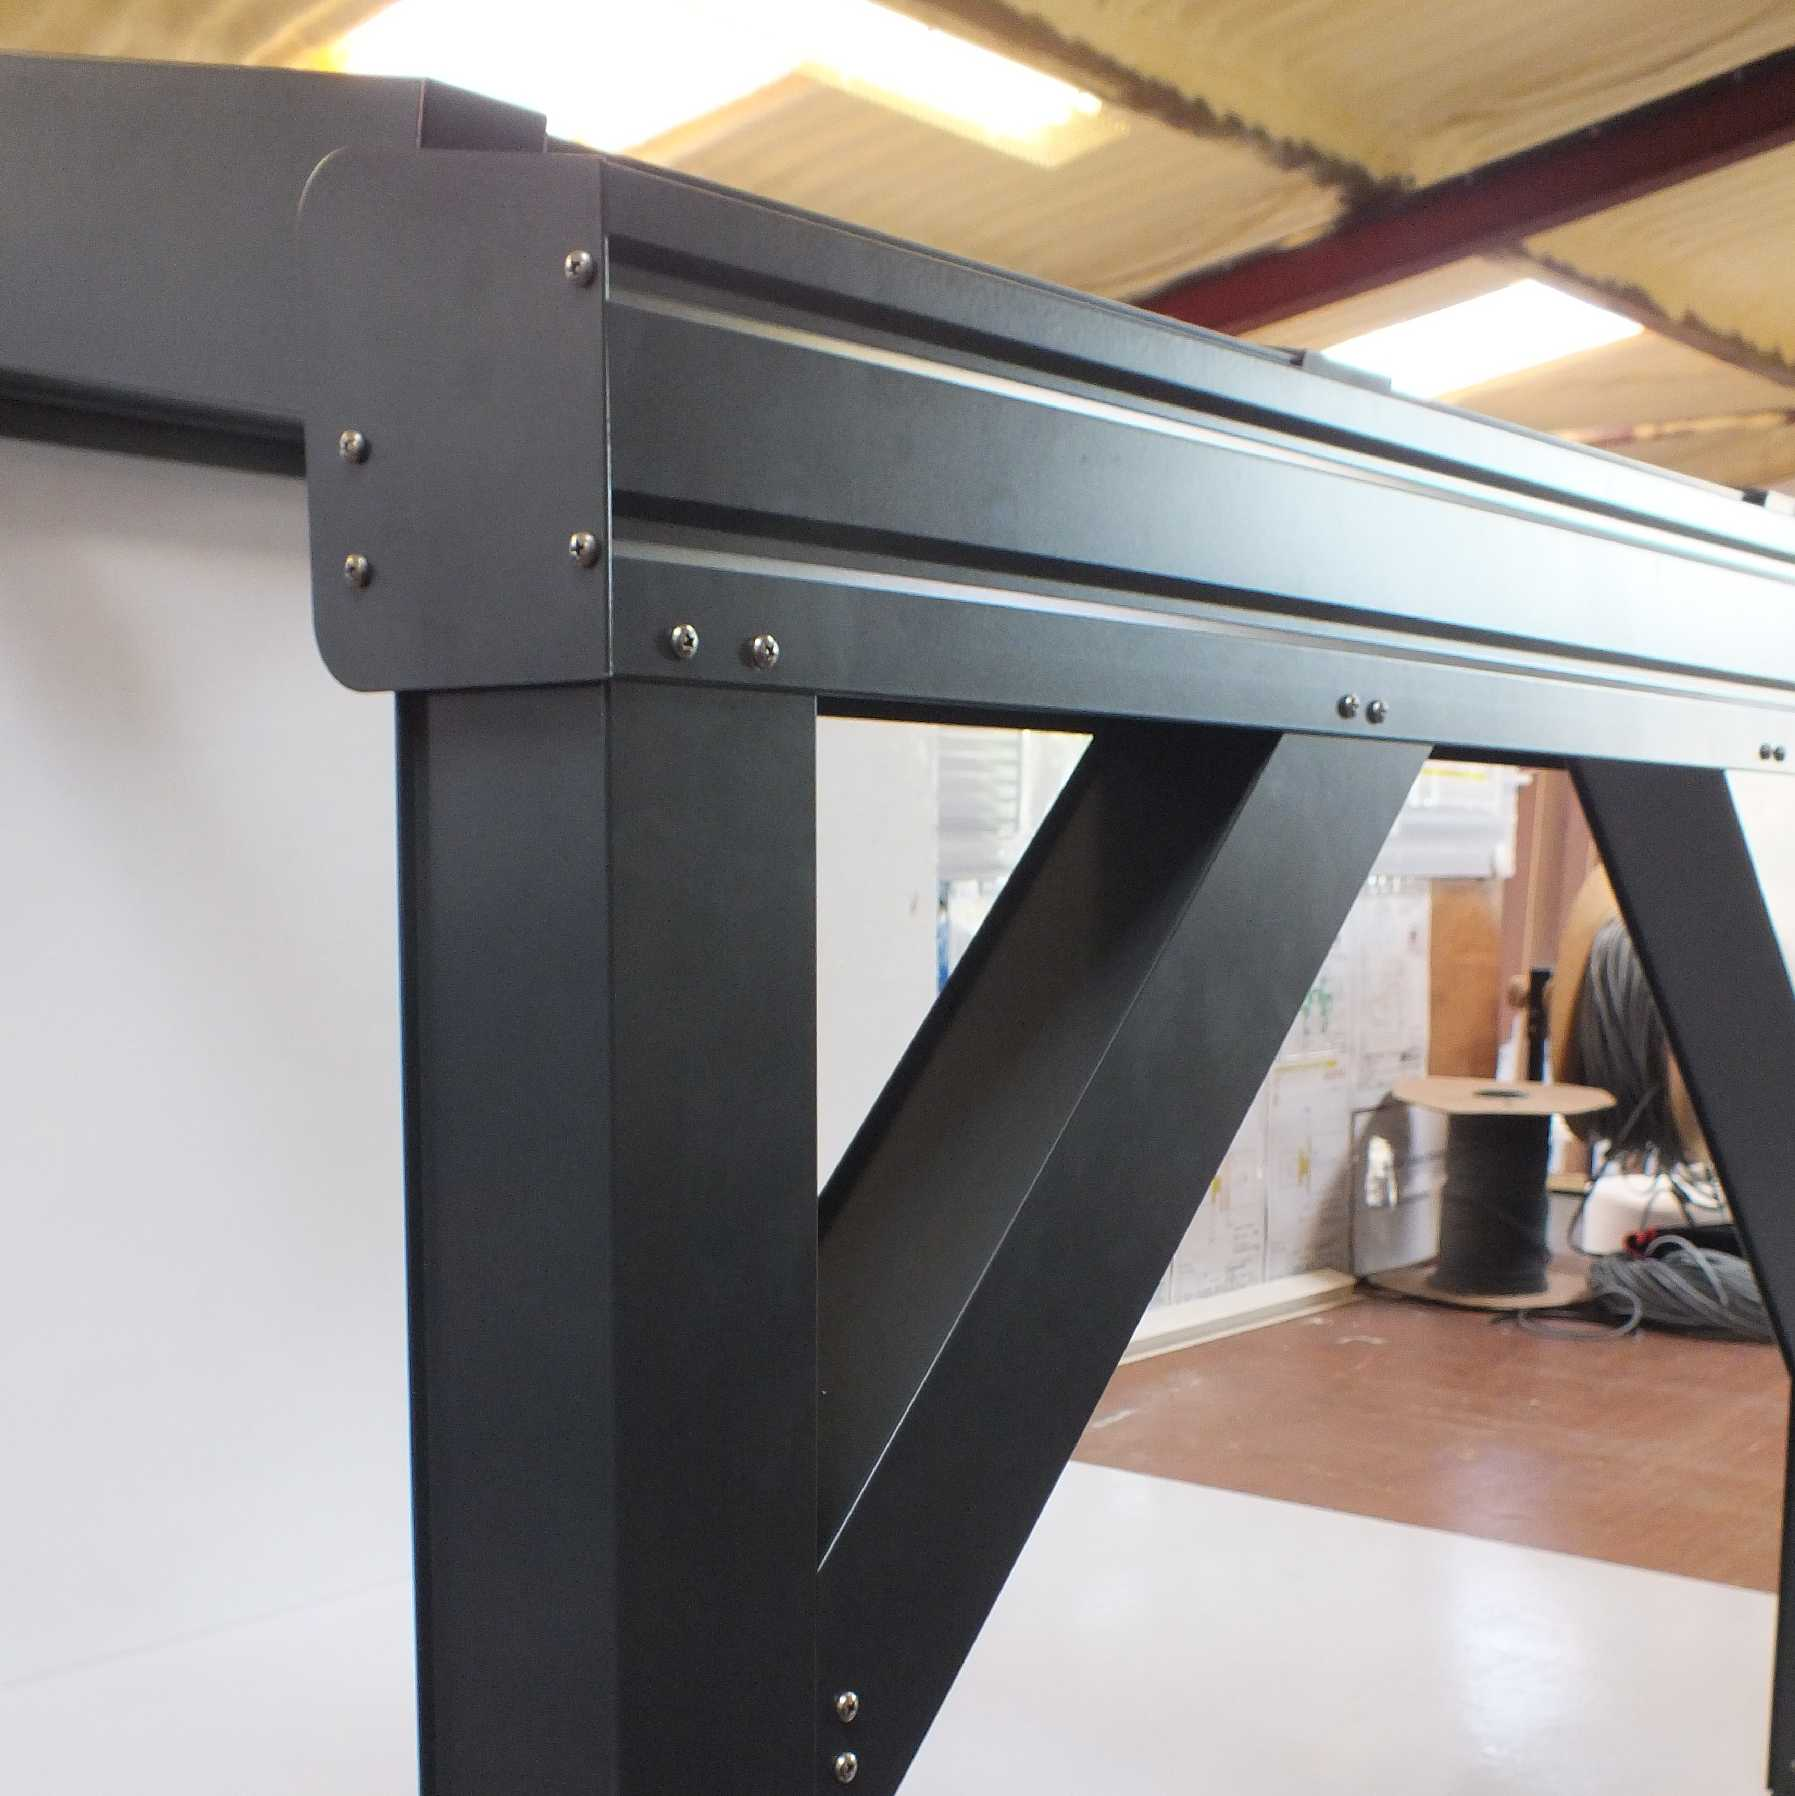 Omega Smart Lean-To Canopy, Anthracite Grey, UNGLAZED for 6mm Glazing - 10.5m (W) x 2.0m (P), (5) Supporting Posts from Omega Build